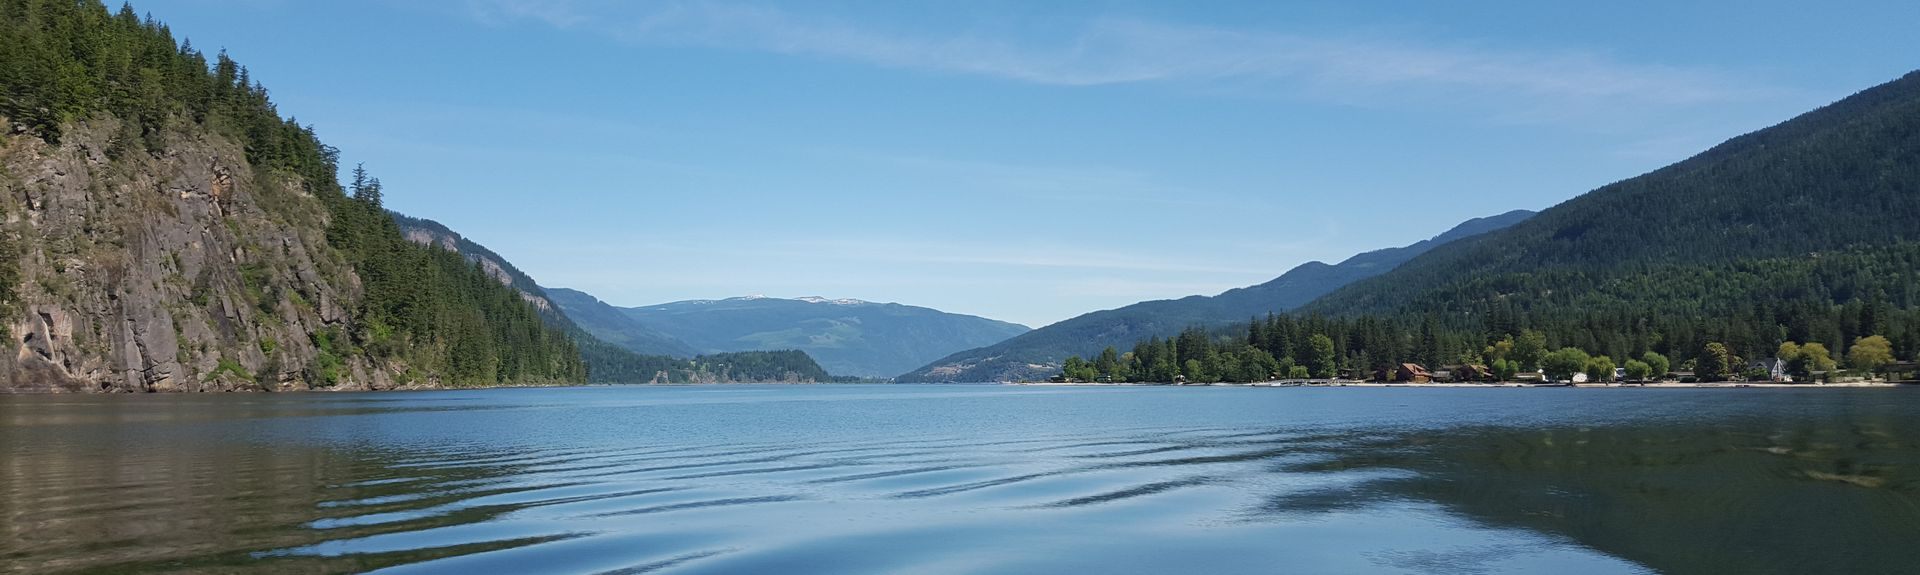 Shuswap Lake Estates Golf and Country Club, British Columbia, CA